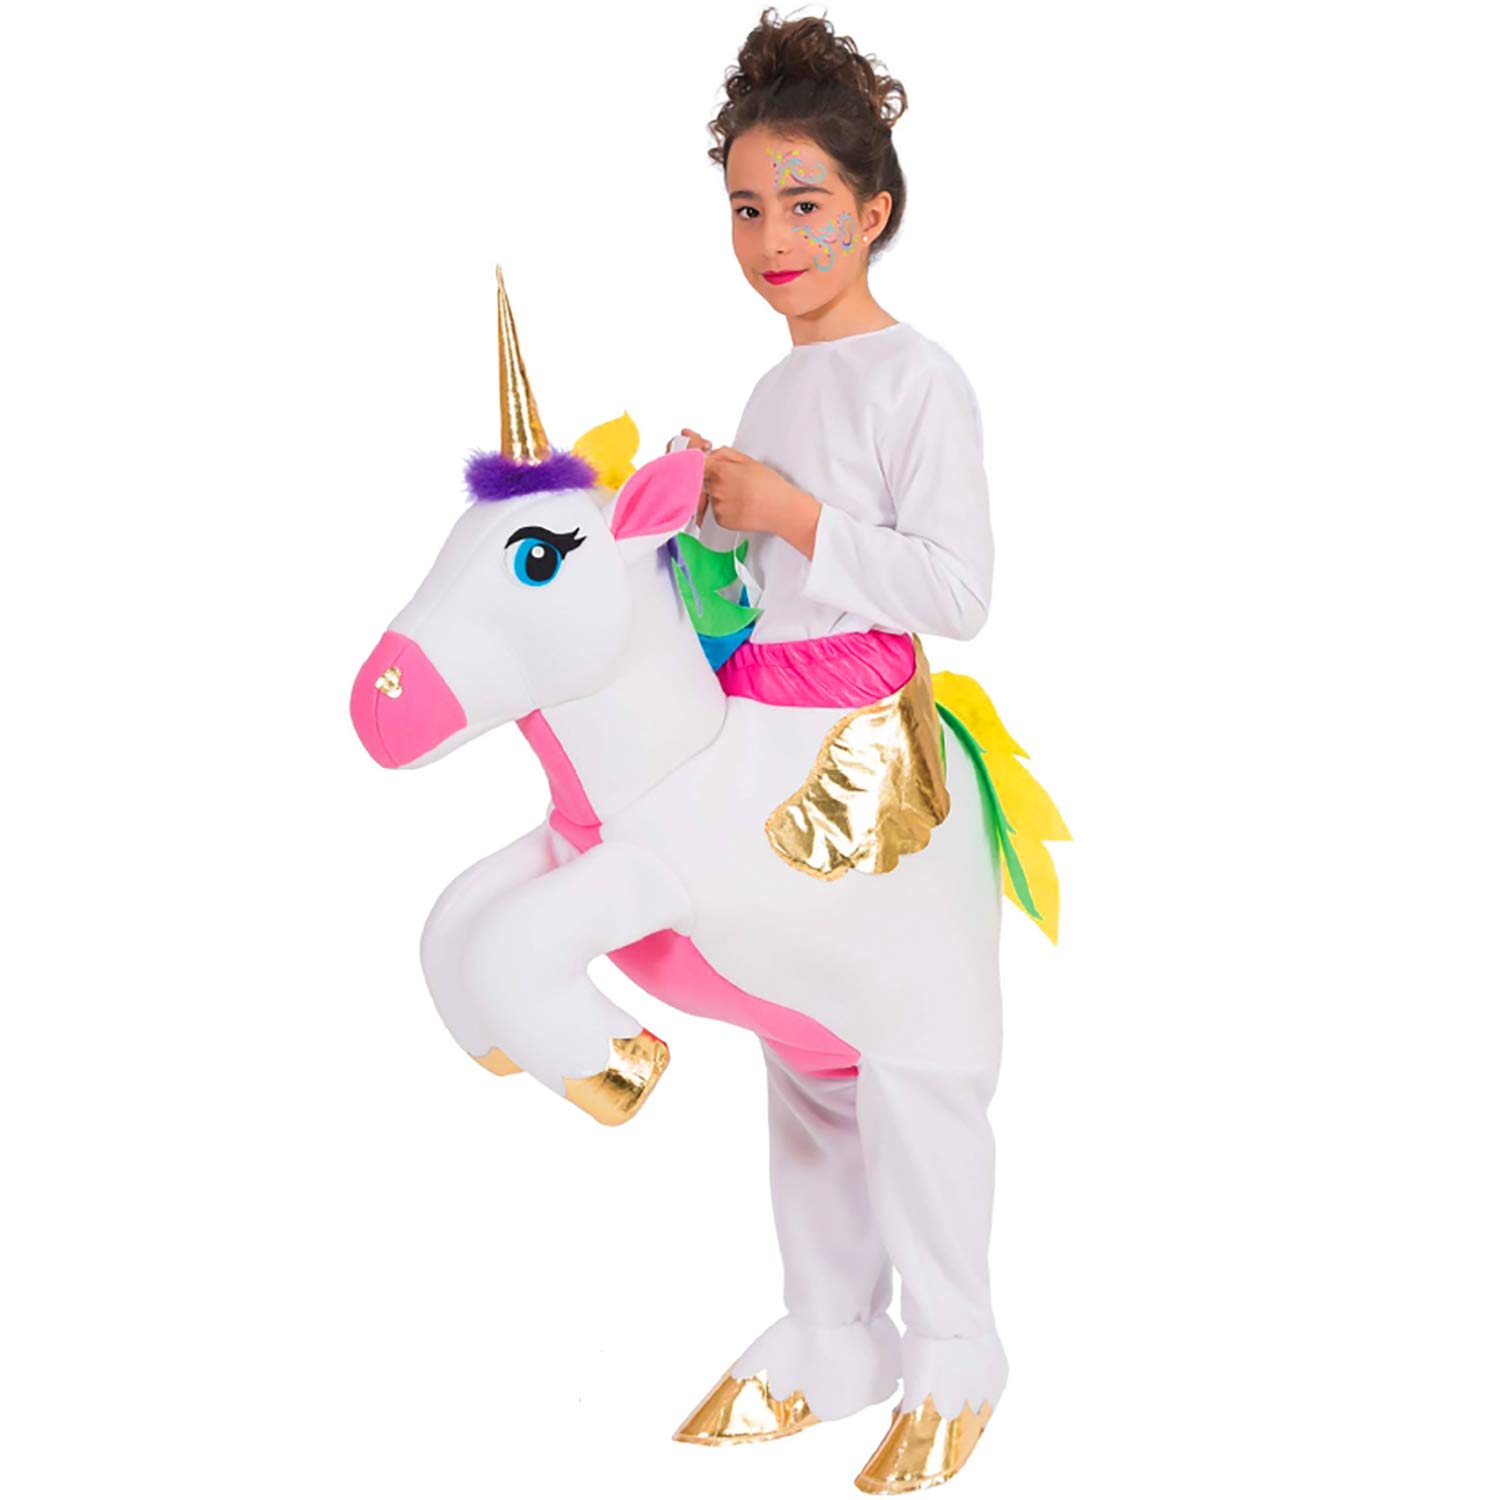 Nines d'Onil Kids Costume Carryingriding Unicorn Butterfly Unicorn Transfiguration Fun Costume Carnival